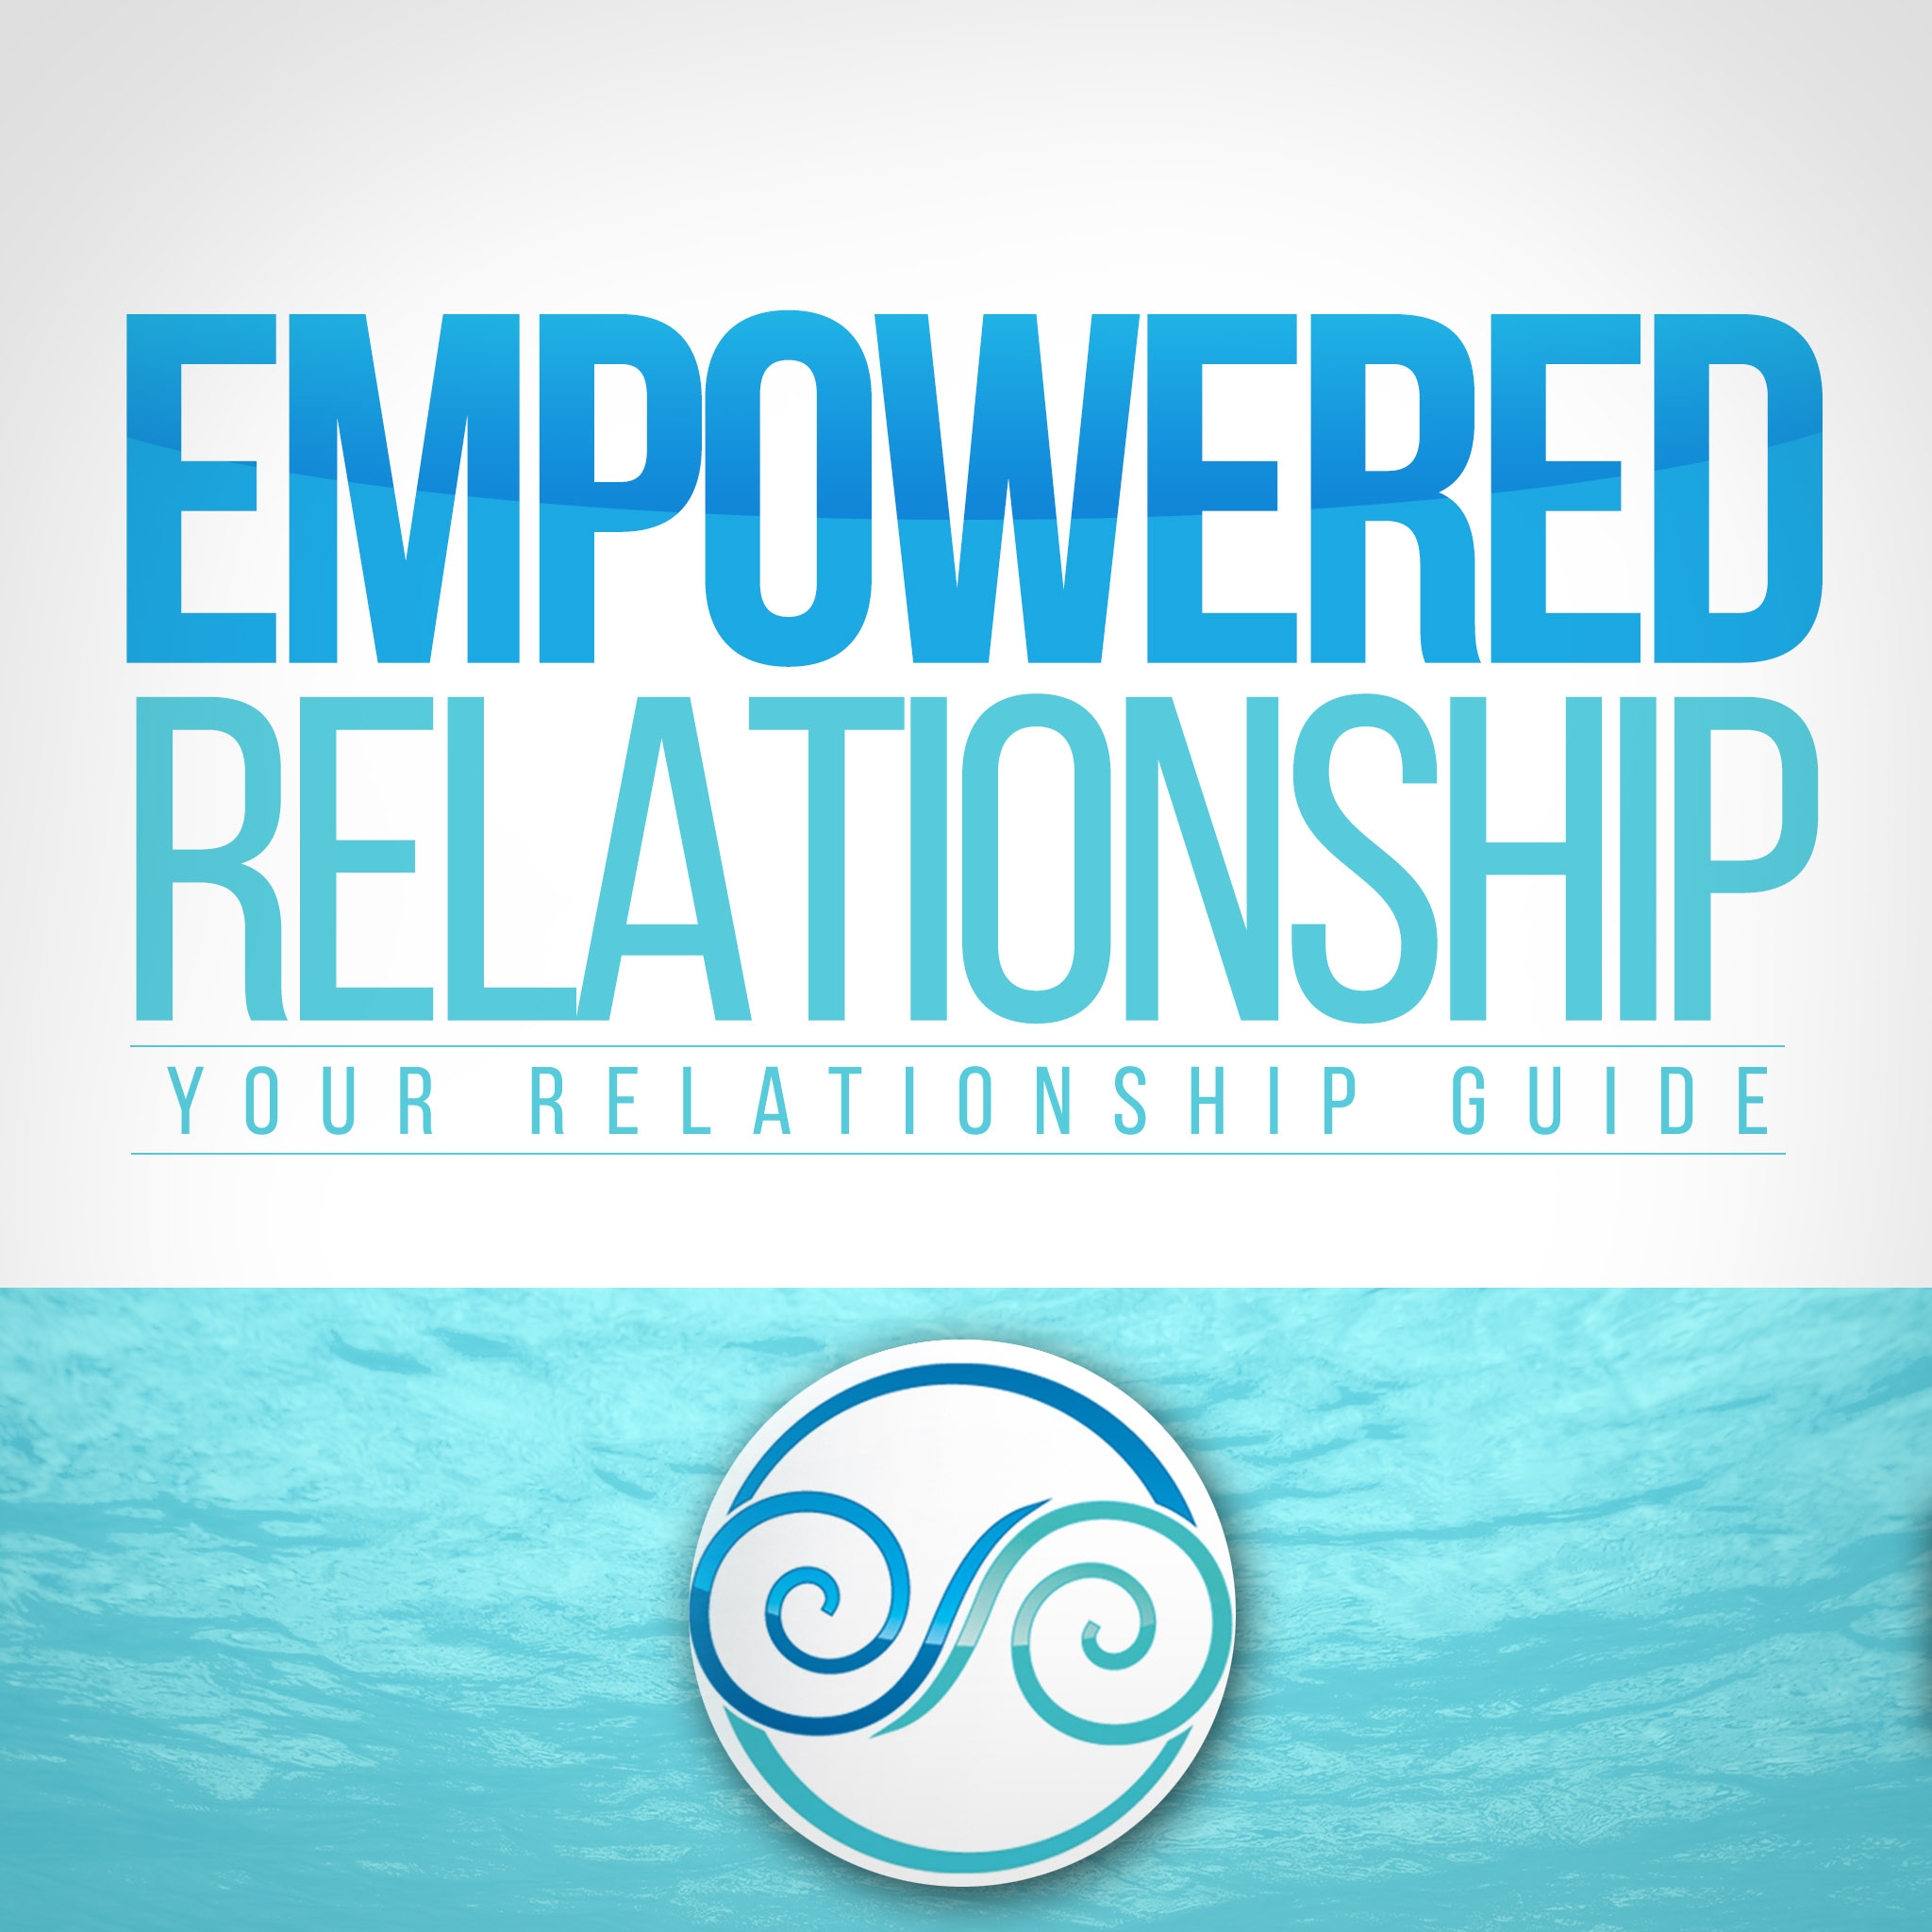 Empowered Relationship Podcast: Your Relationship Resource And Guide